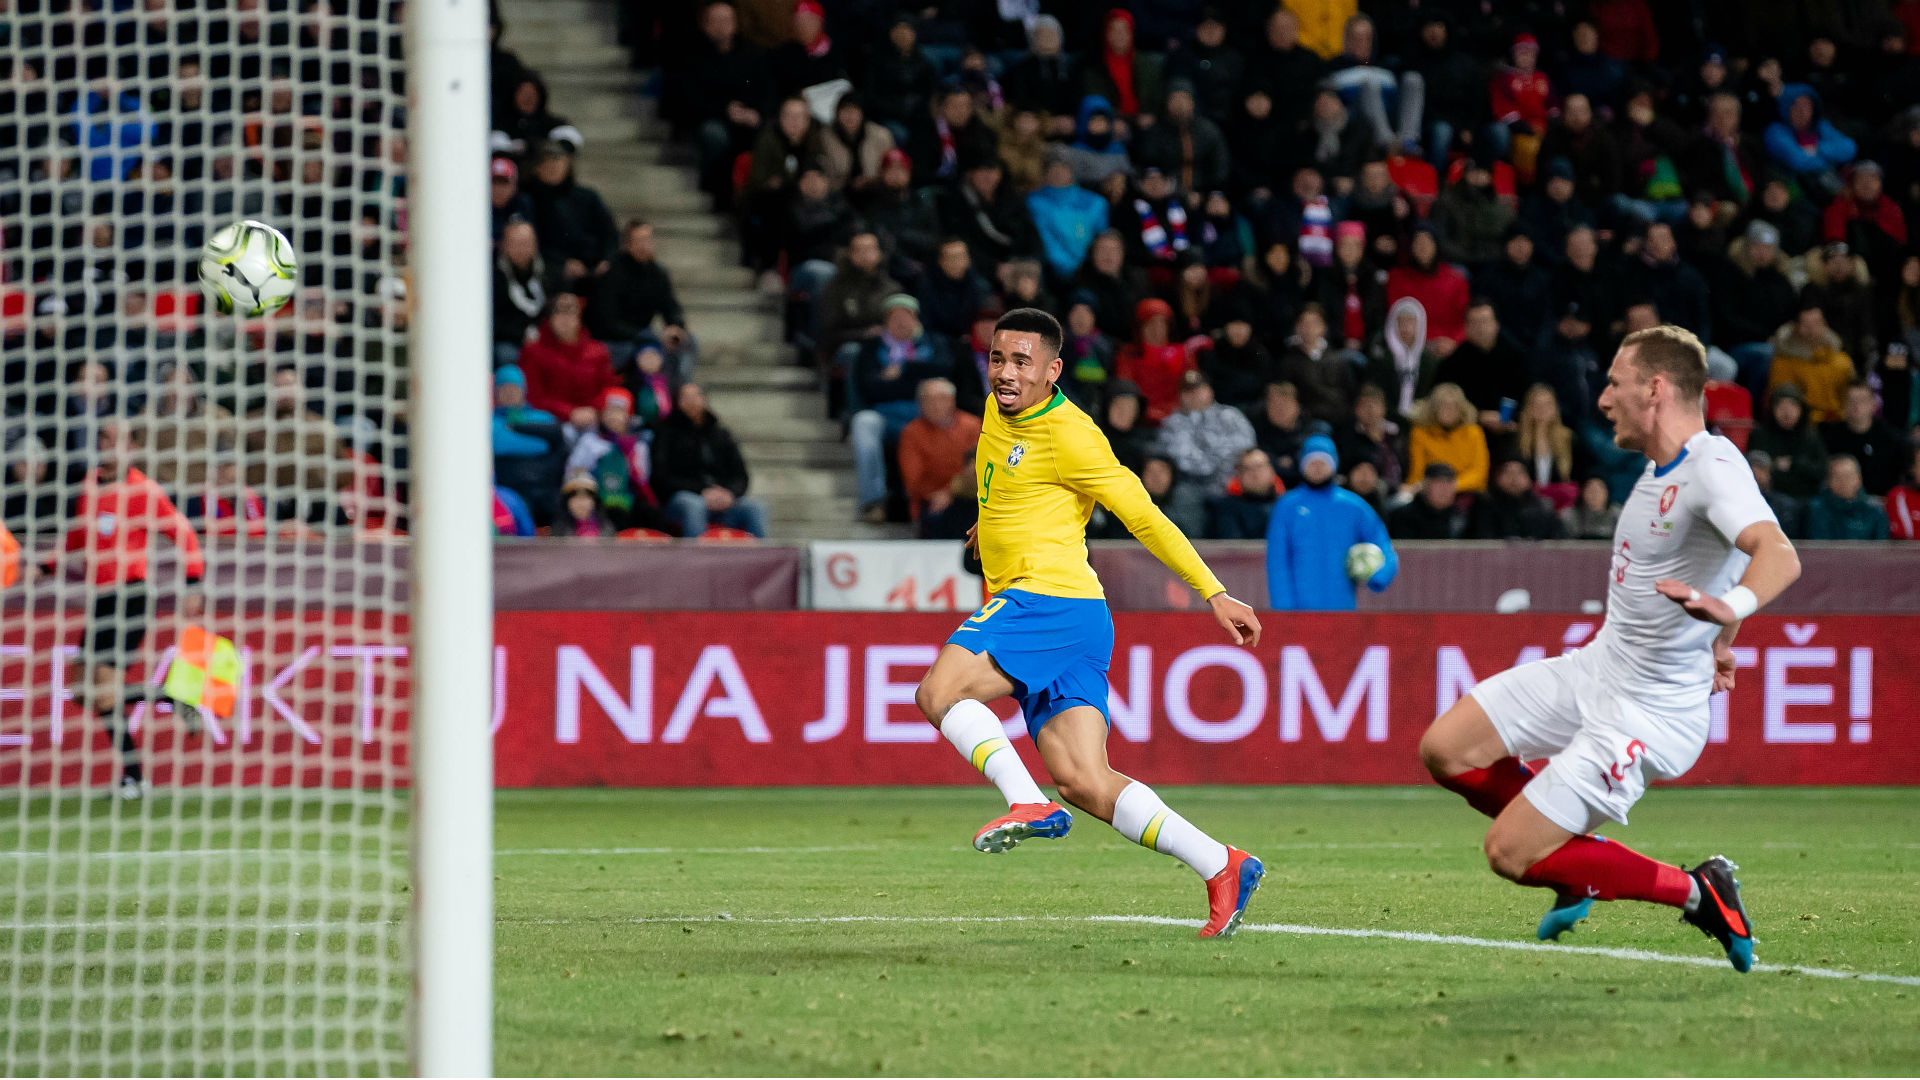 Czech Republic 1 Brazil 3: Jesus double seals unconvincing win